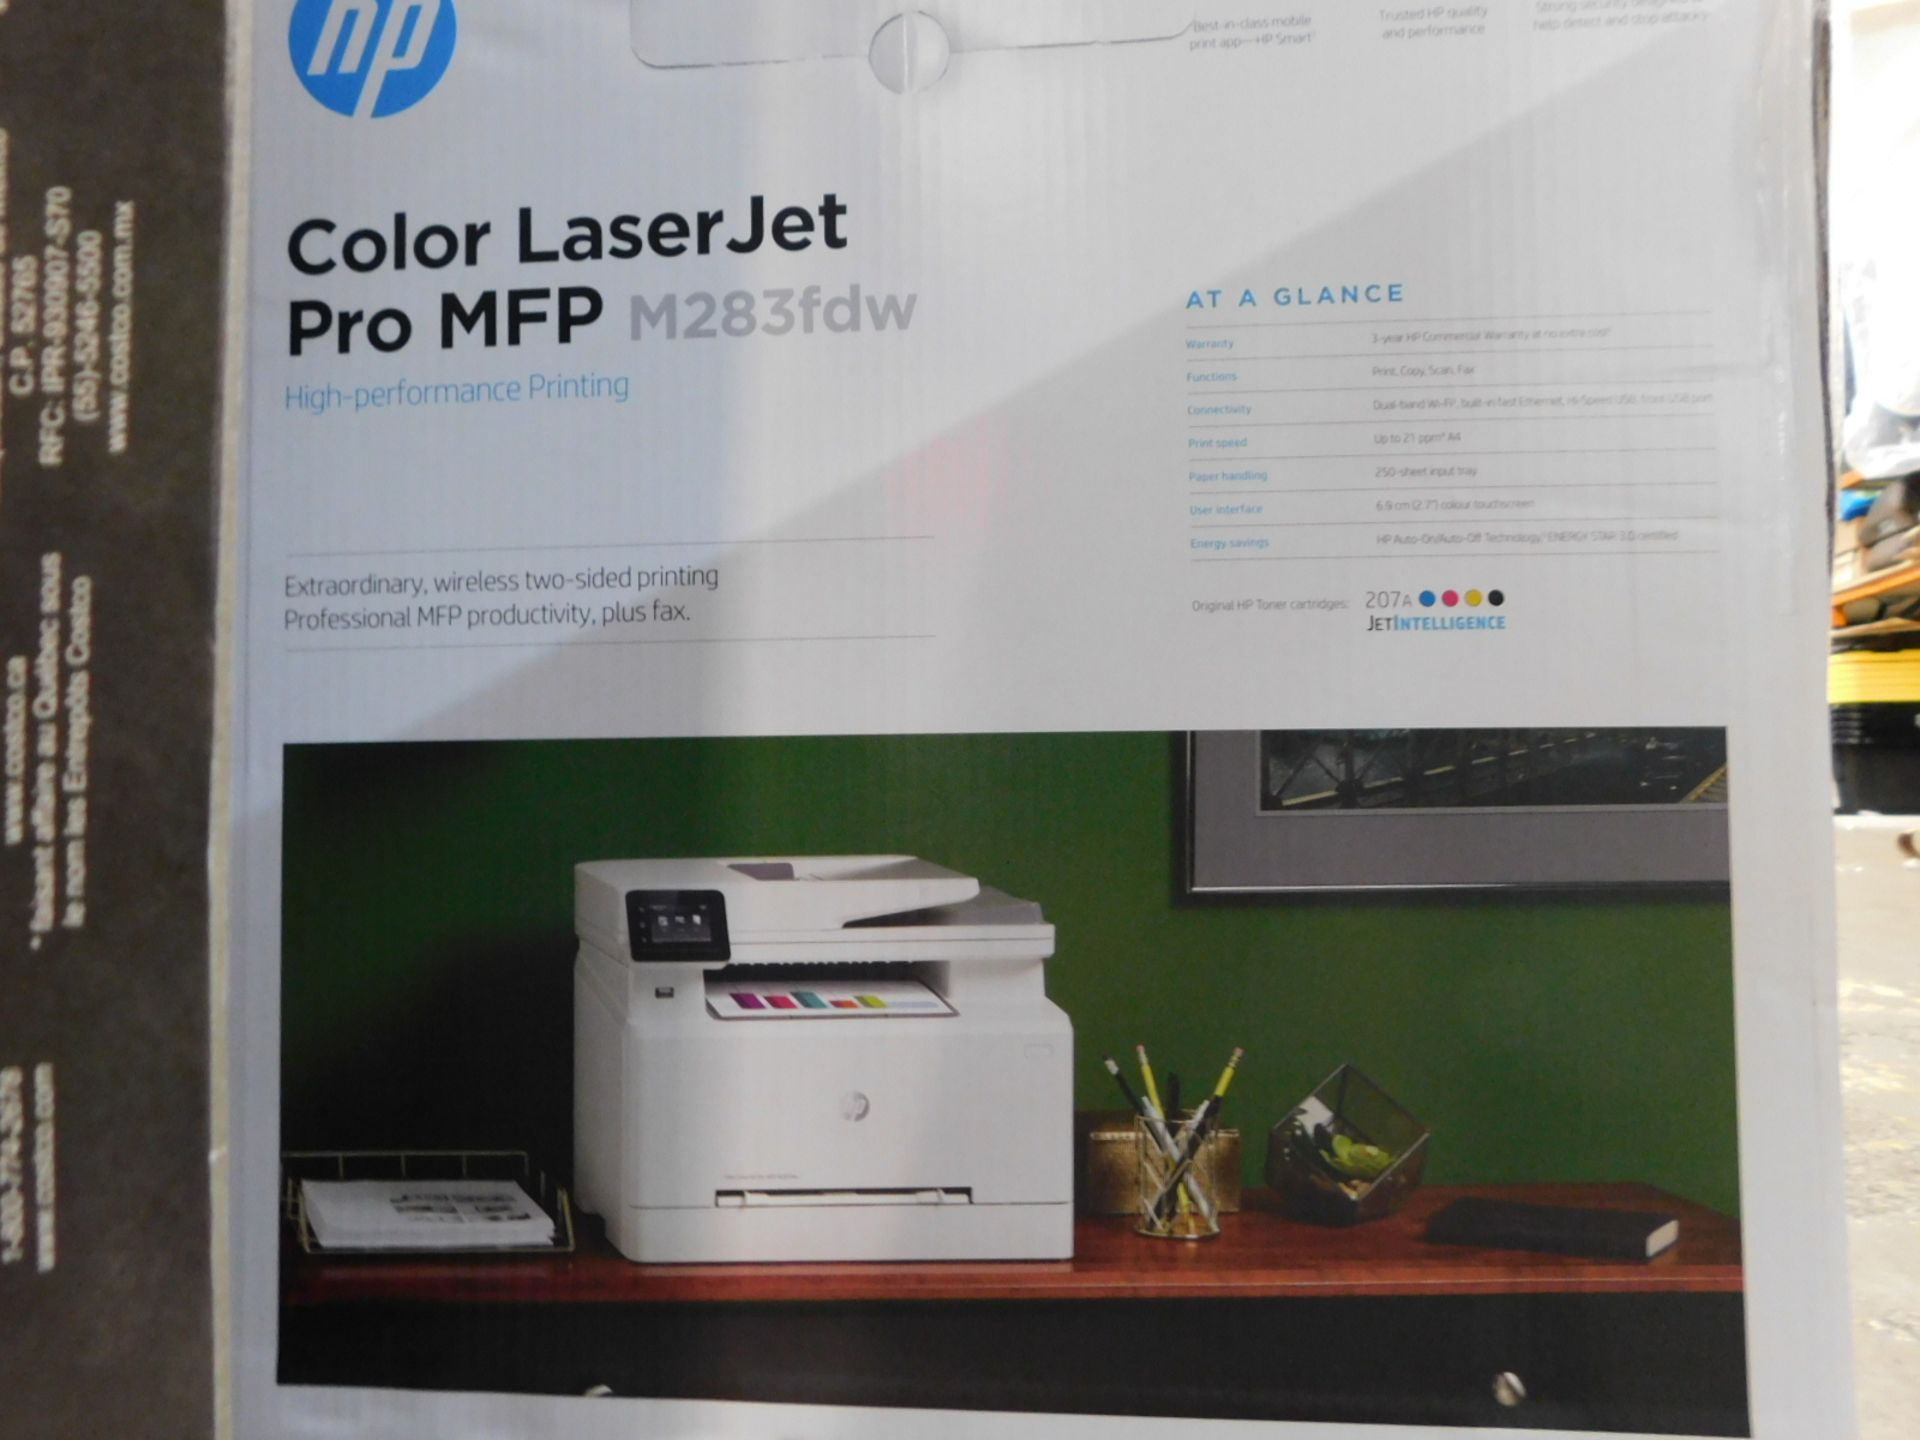 1 BOXED HP COLOR LASERJET PRO MFP M283FDW ALL-IN-ONE WIRELESS LASER PRINTER WITH FAX RRP £399